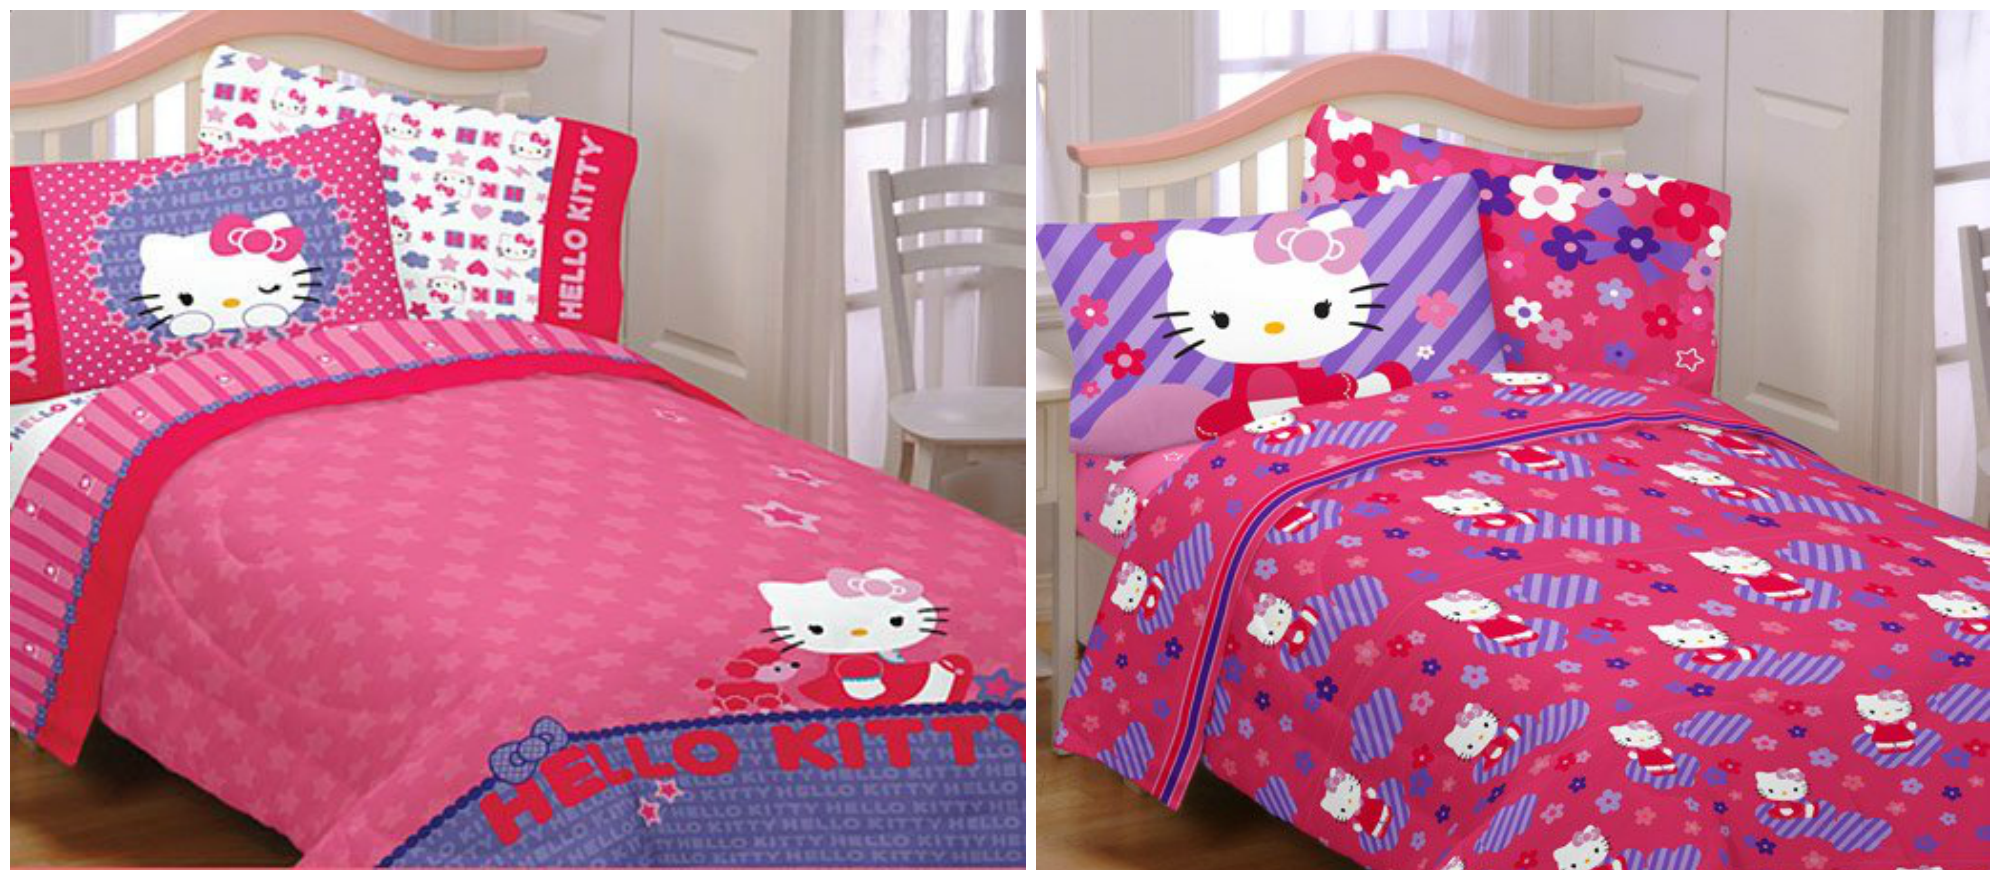 Pink hello kitty bedsheet - Hello Kitty Bedding Set And Hello Kitty Duvet Cover Sets